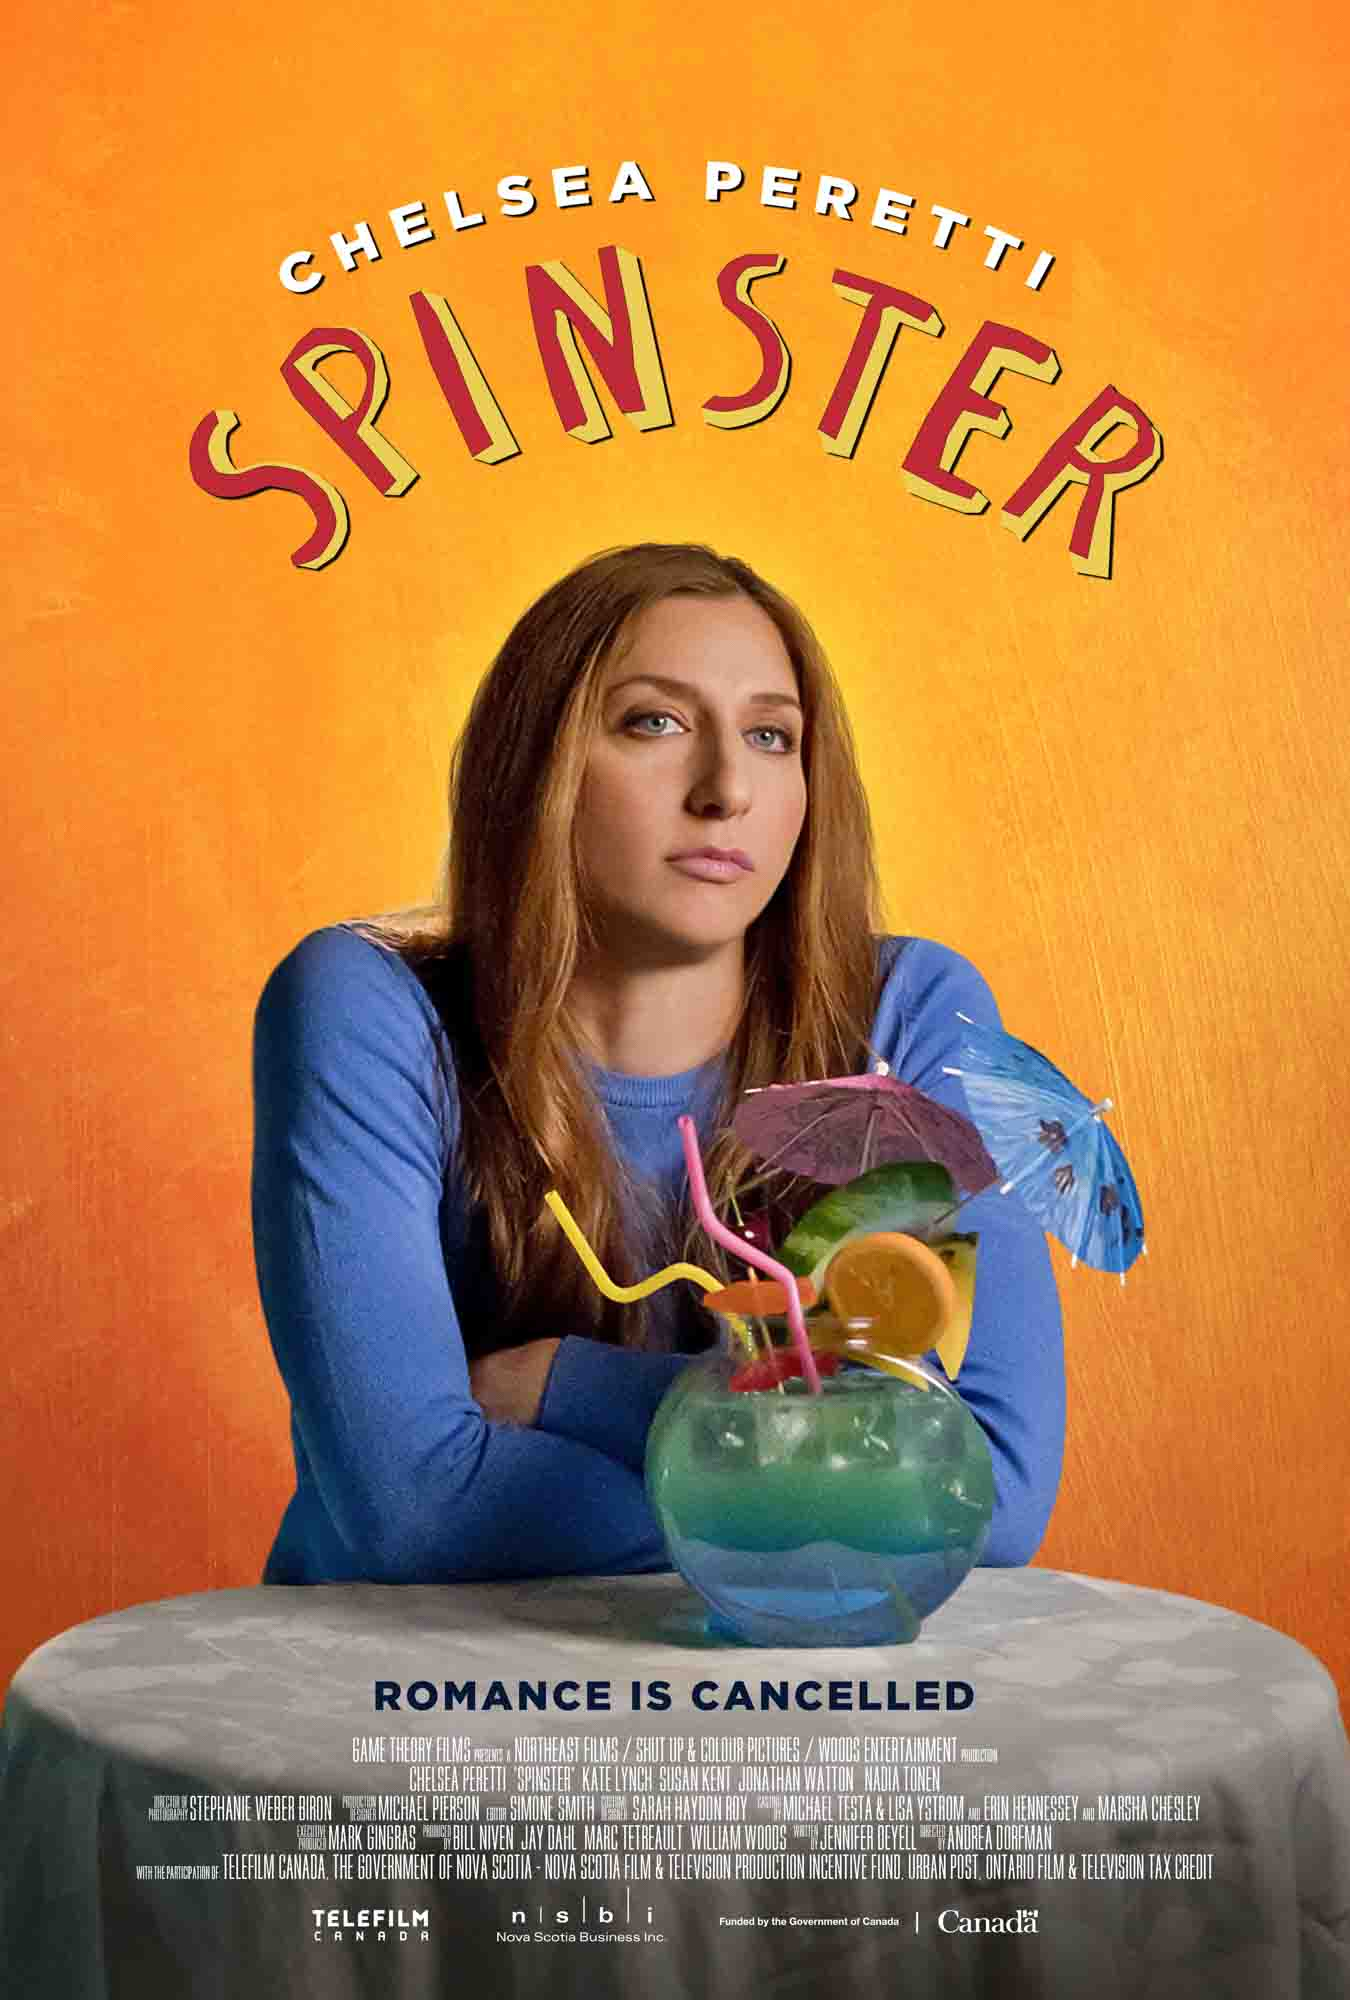 Chelsea Peretti makes movie lead debut in Spinster trailer